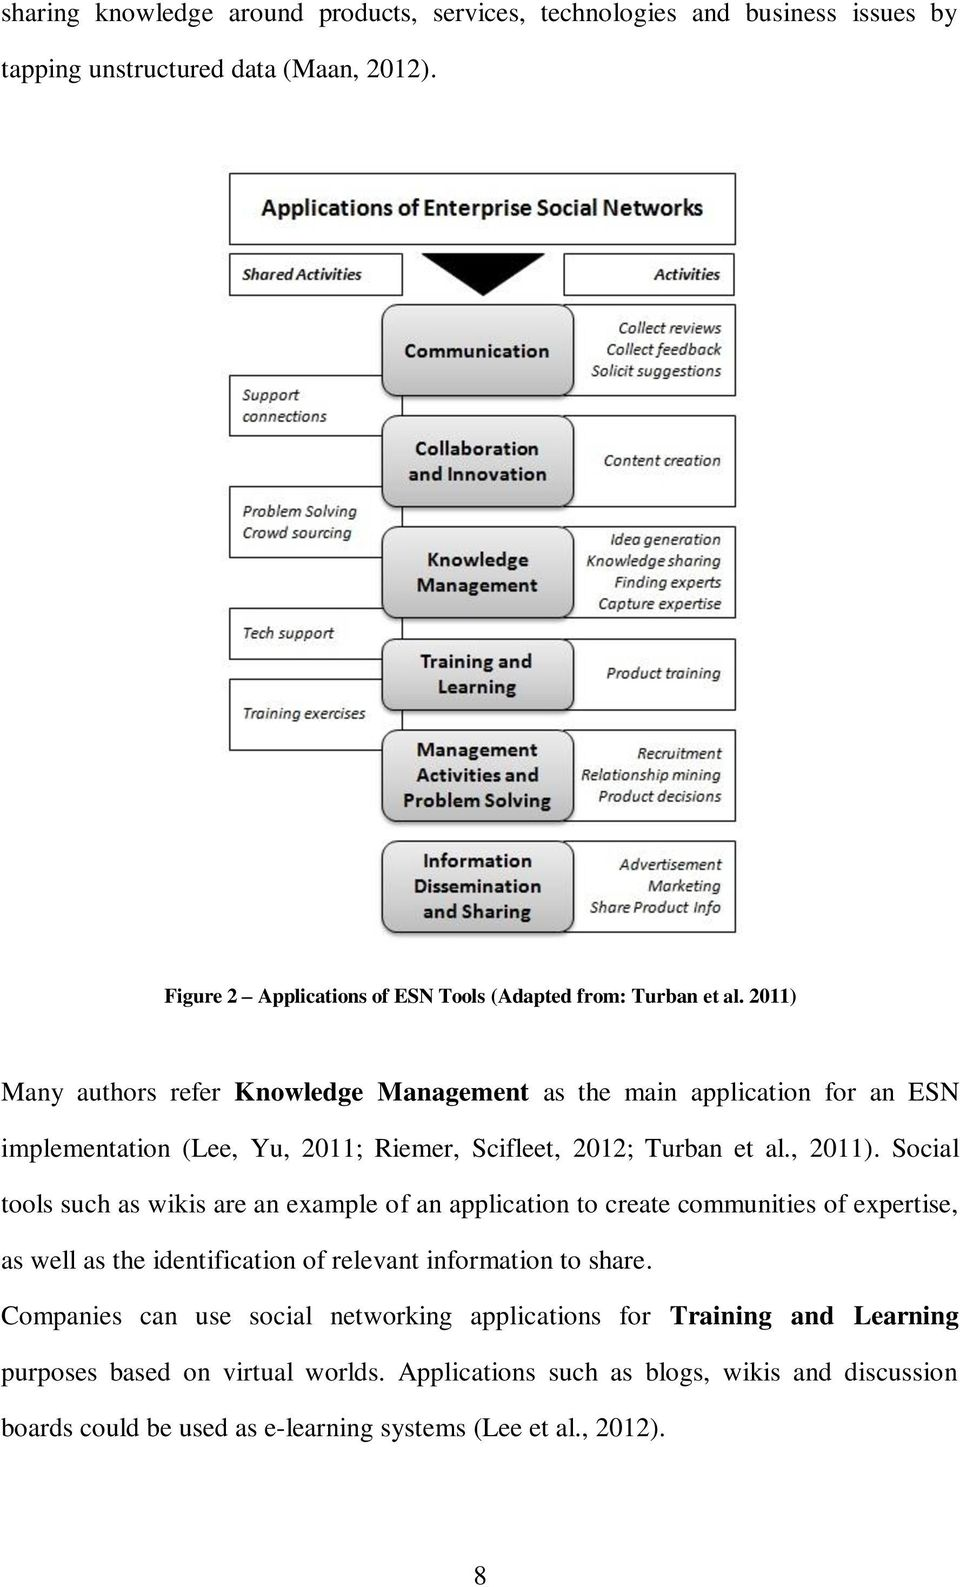 2011) Many authors refer Knowledge Management as the main application for an ESN implementation (Lee, Yu, 2011; Riemer, Scifleet, 2012; Turban et al., 2011).